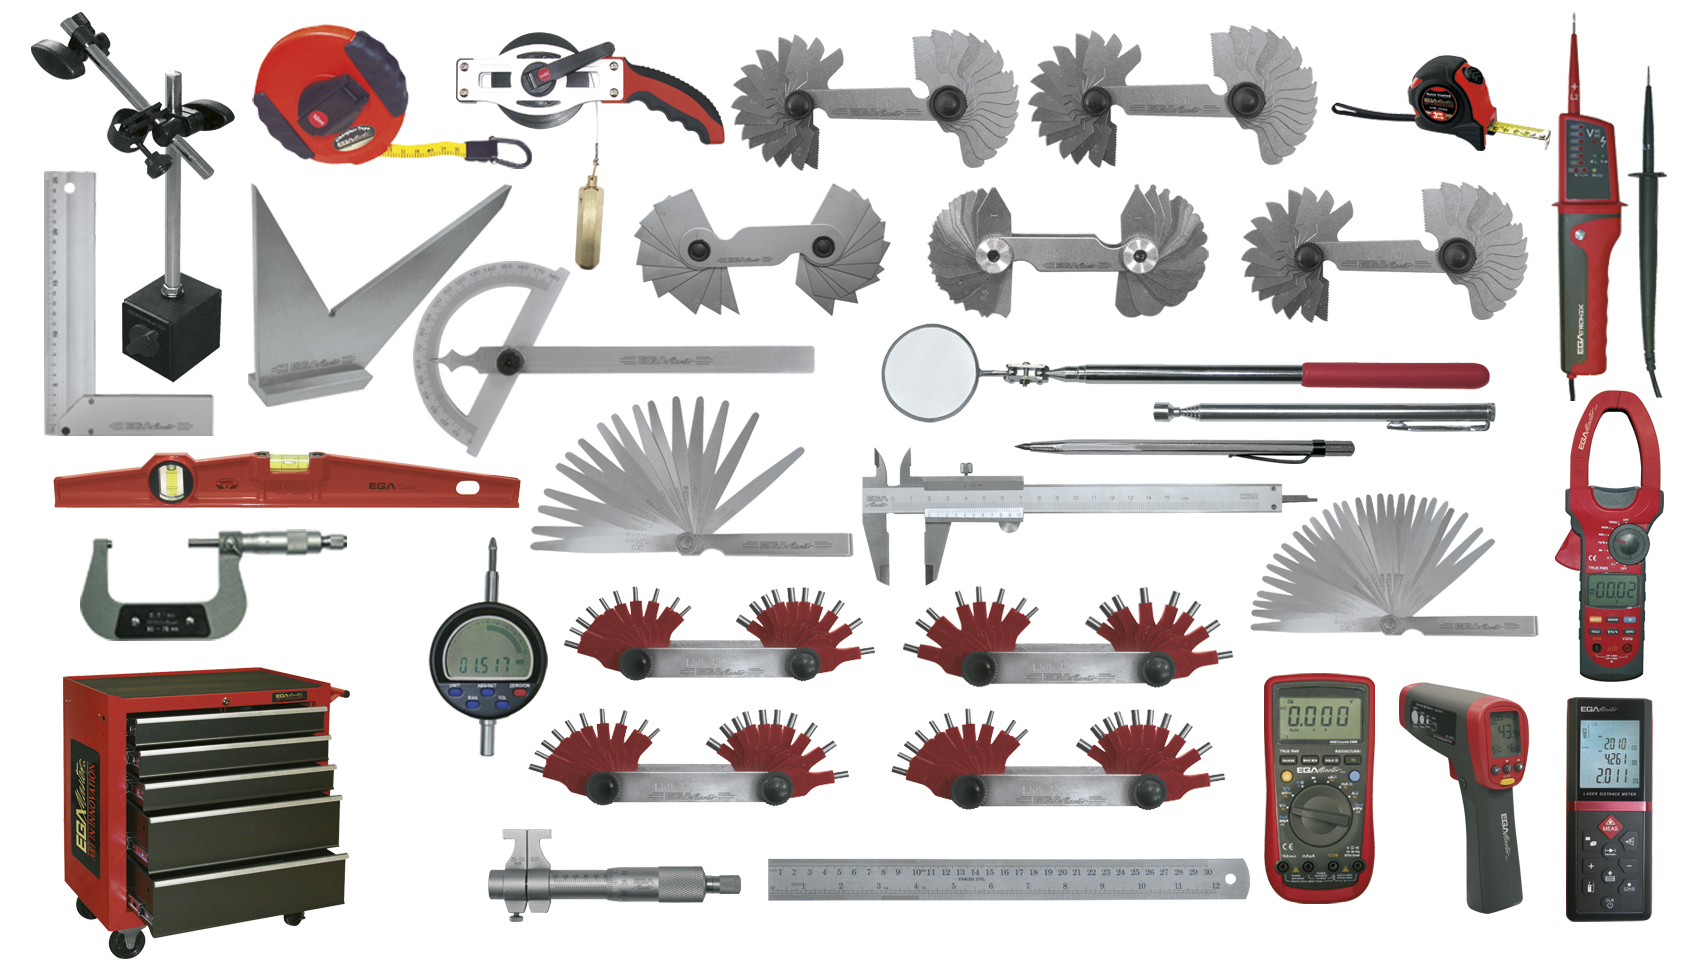 MEASURING AND DETECTION SET